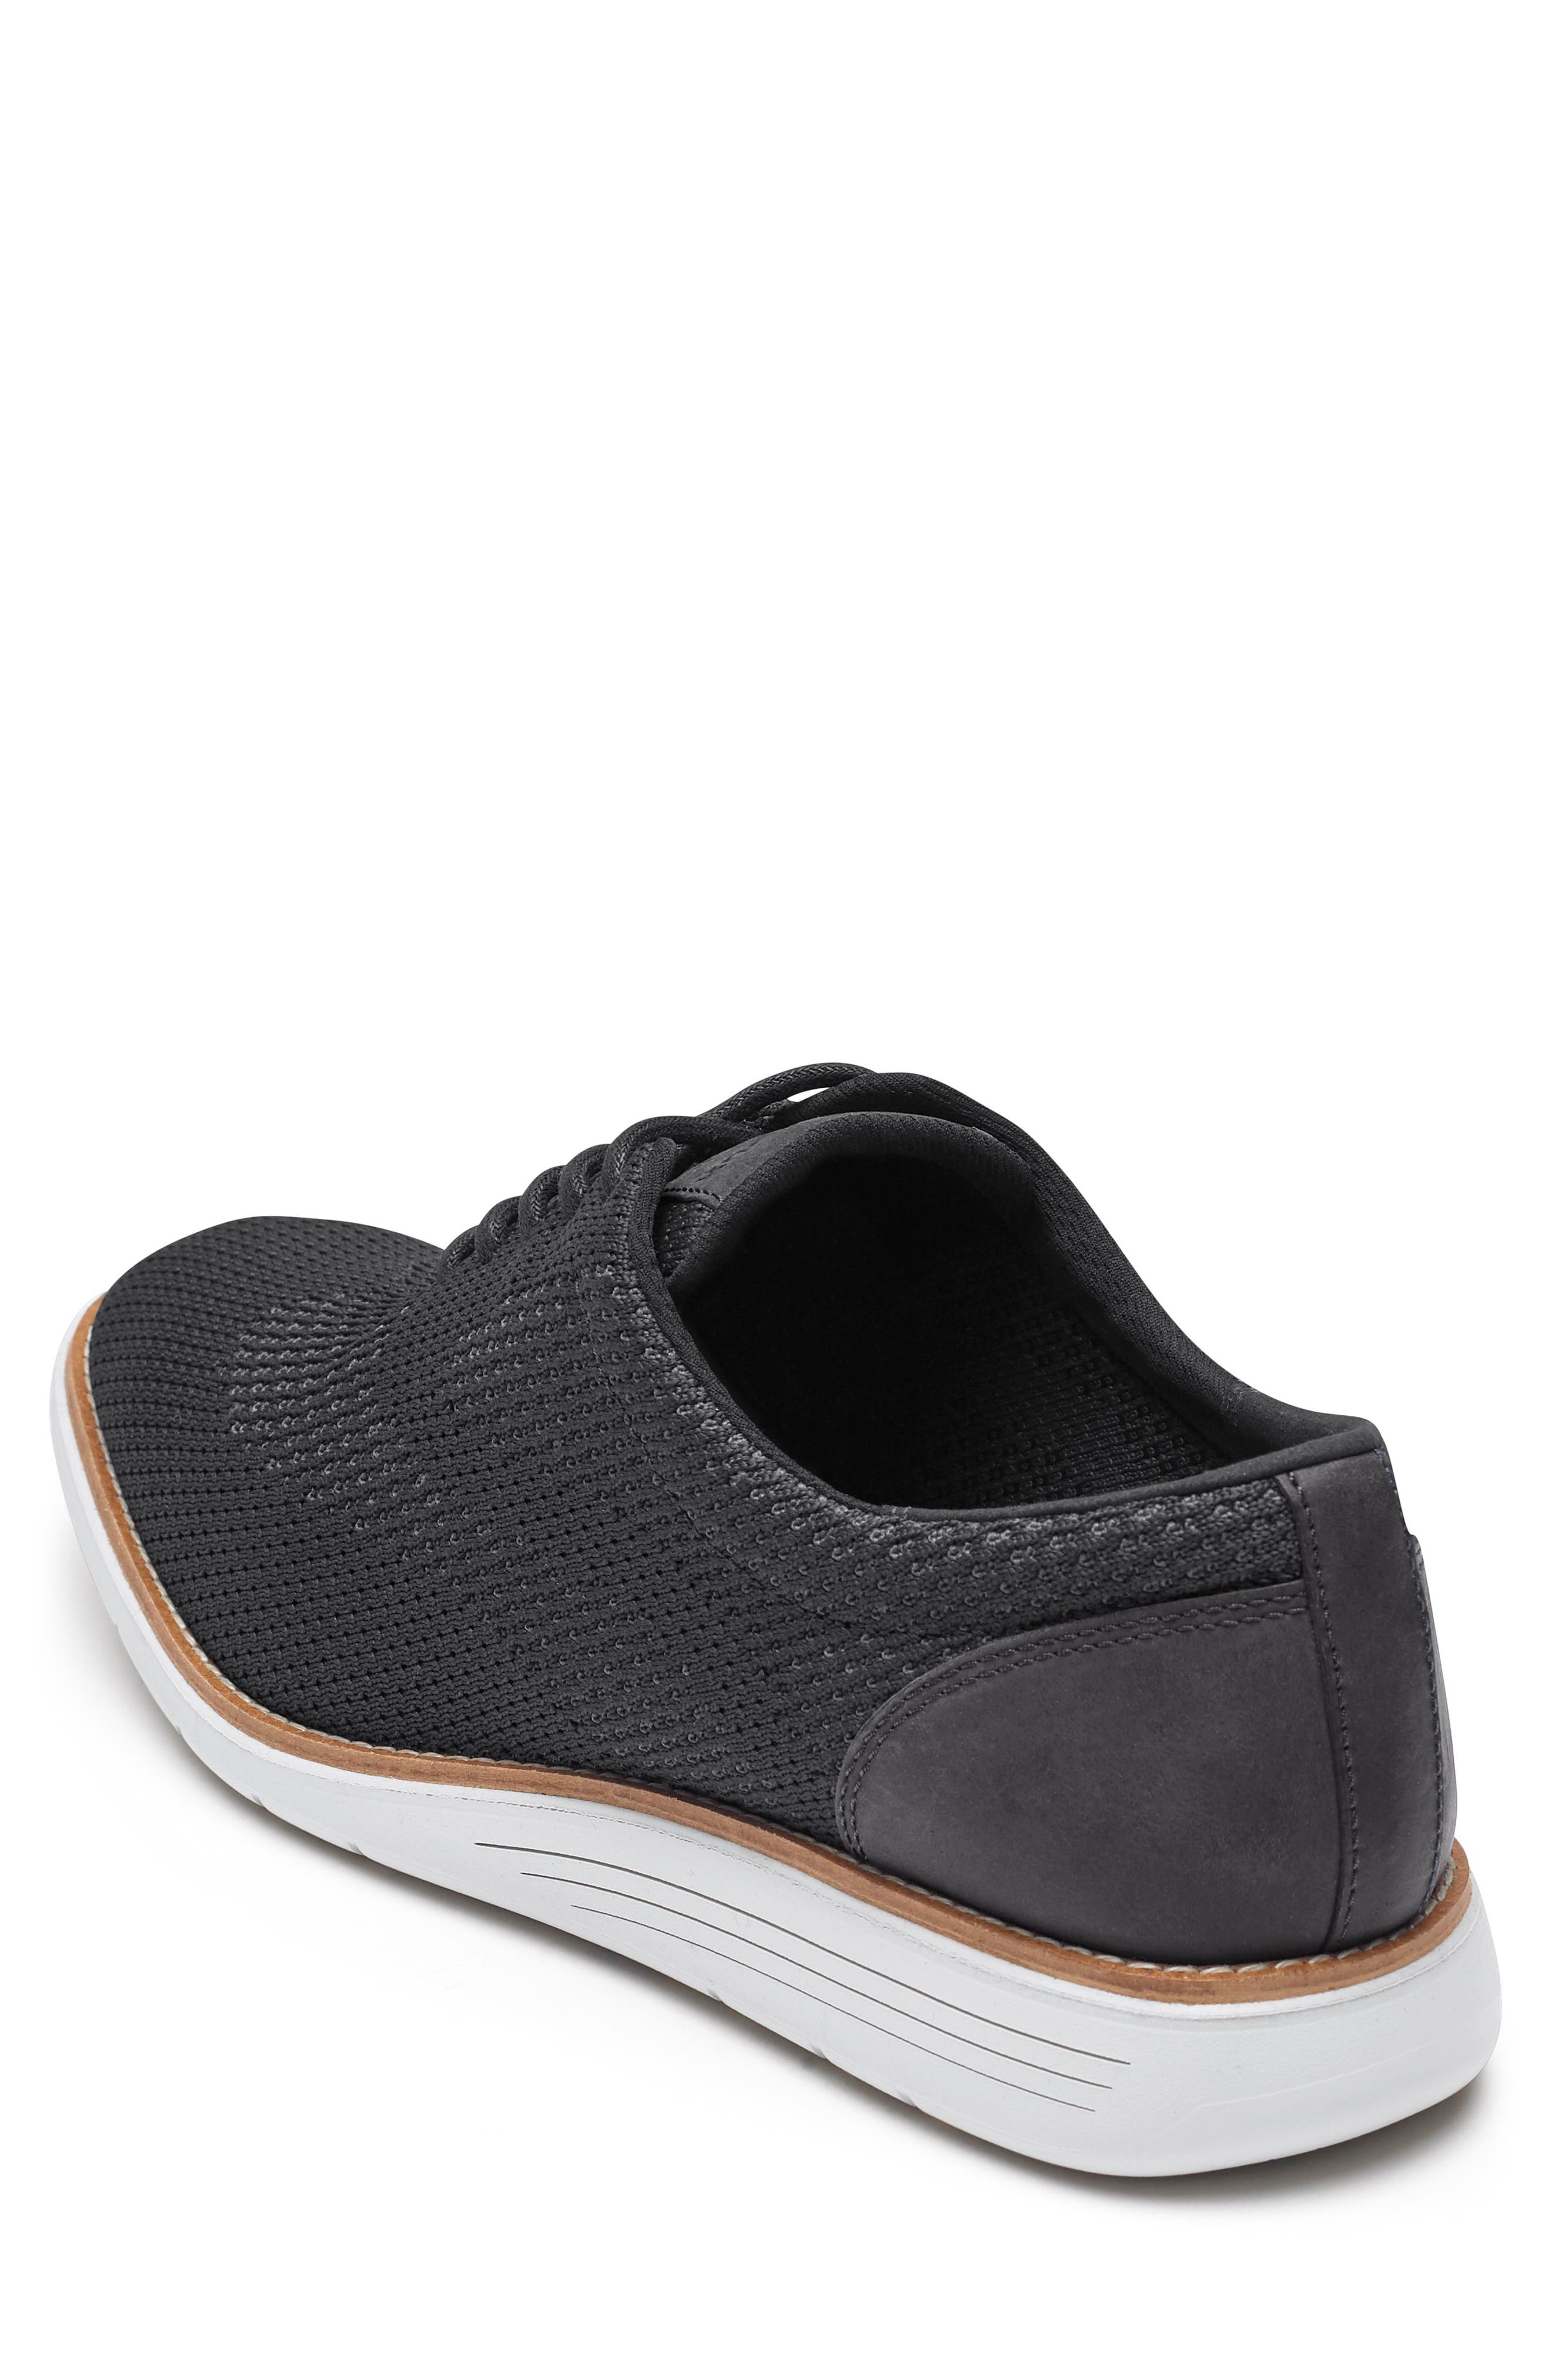 Total Motion Sport Oxford,                             Alternate thumbnail 2, color,                             Black Leather